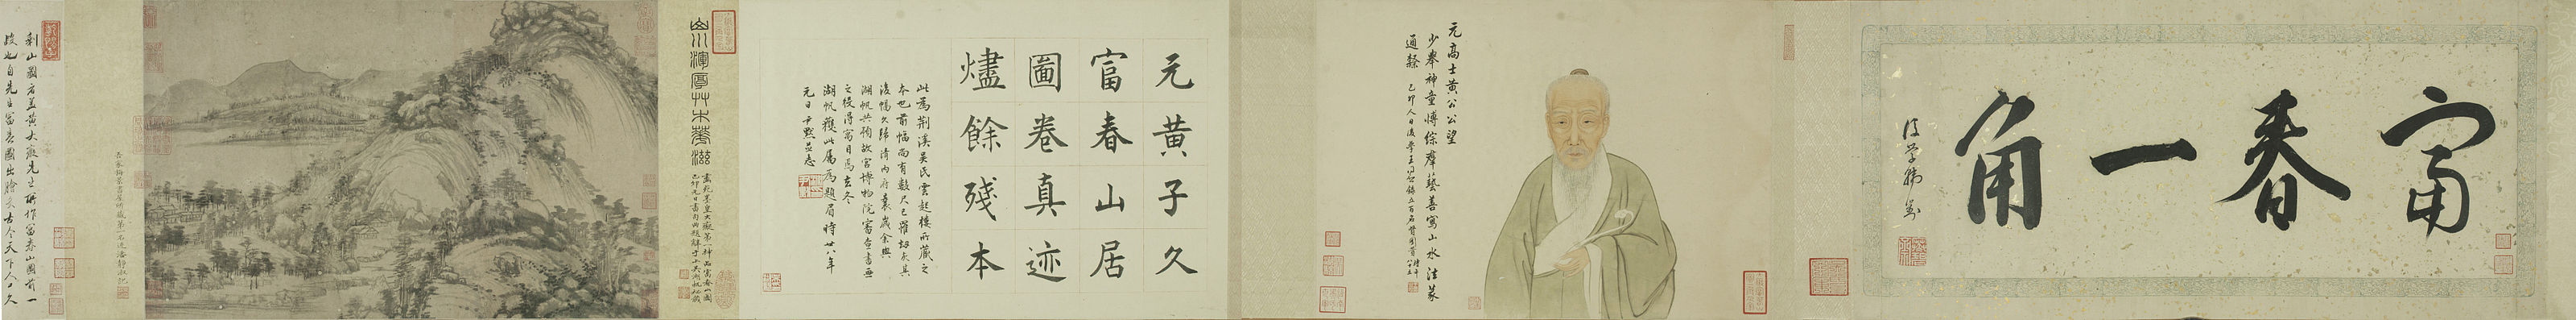 """The Remaining Mountain"" (first part of the scroll), Huang Gongwang, Dwelling in the Fuchun Mountains, 1350, handscroll, ink on paper, 31.8 x 51.4 cm (Zhejiang Provincial Museum, Hangzhou)"